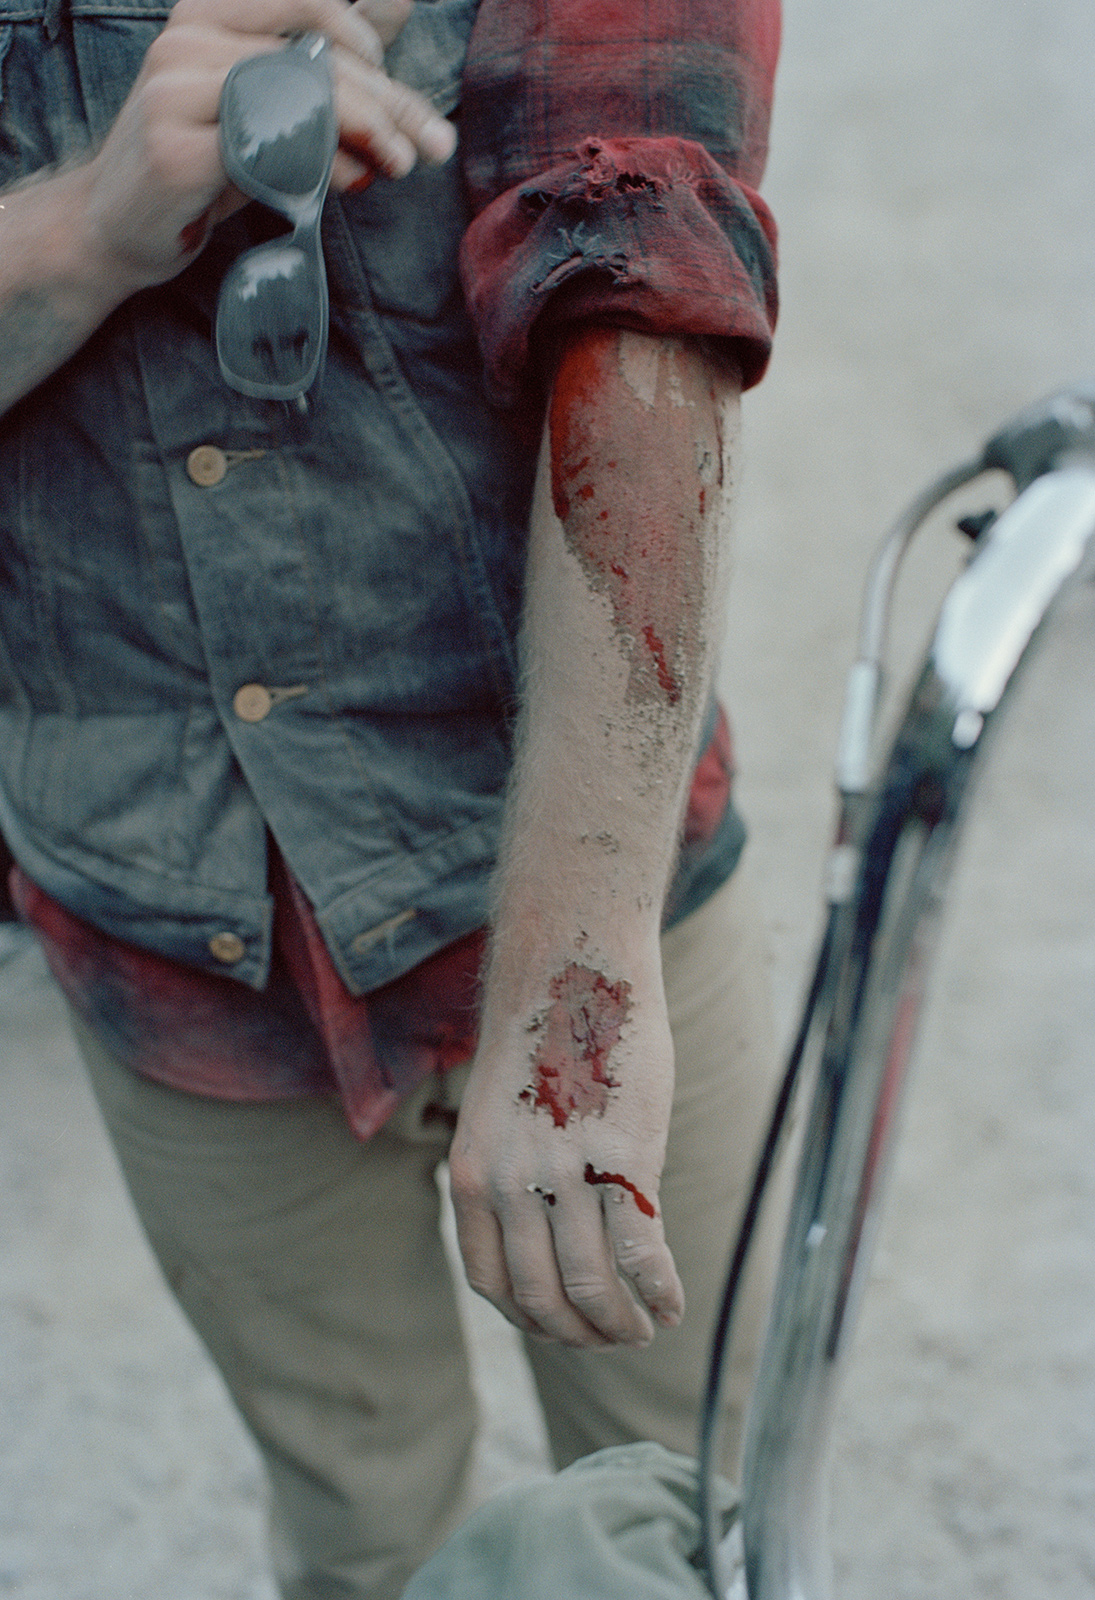 disaster-days-darren-bloody-arm-2012.jpg